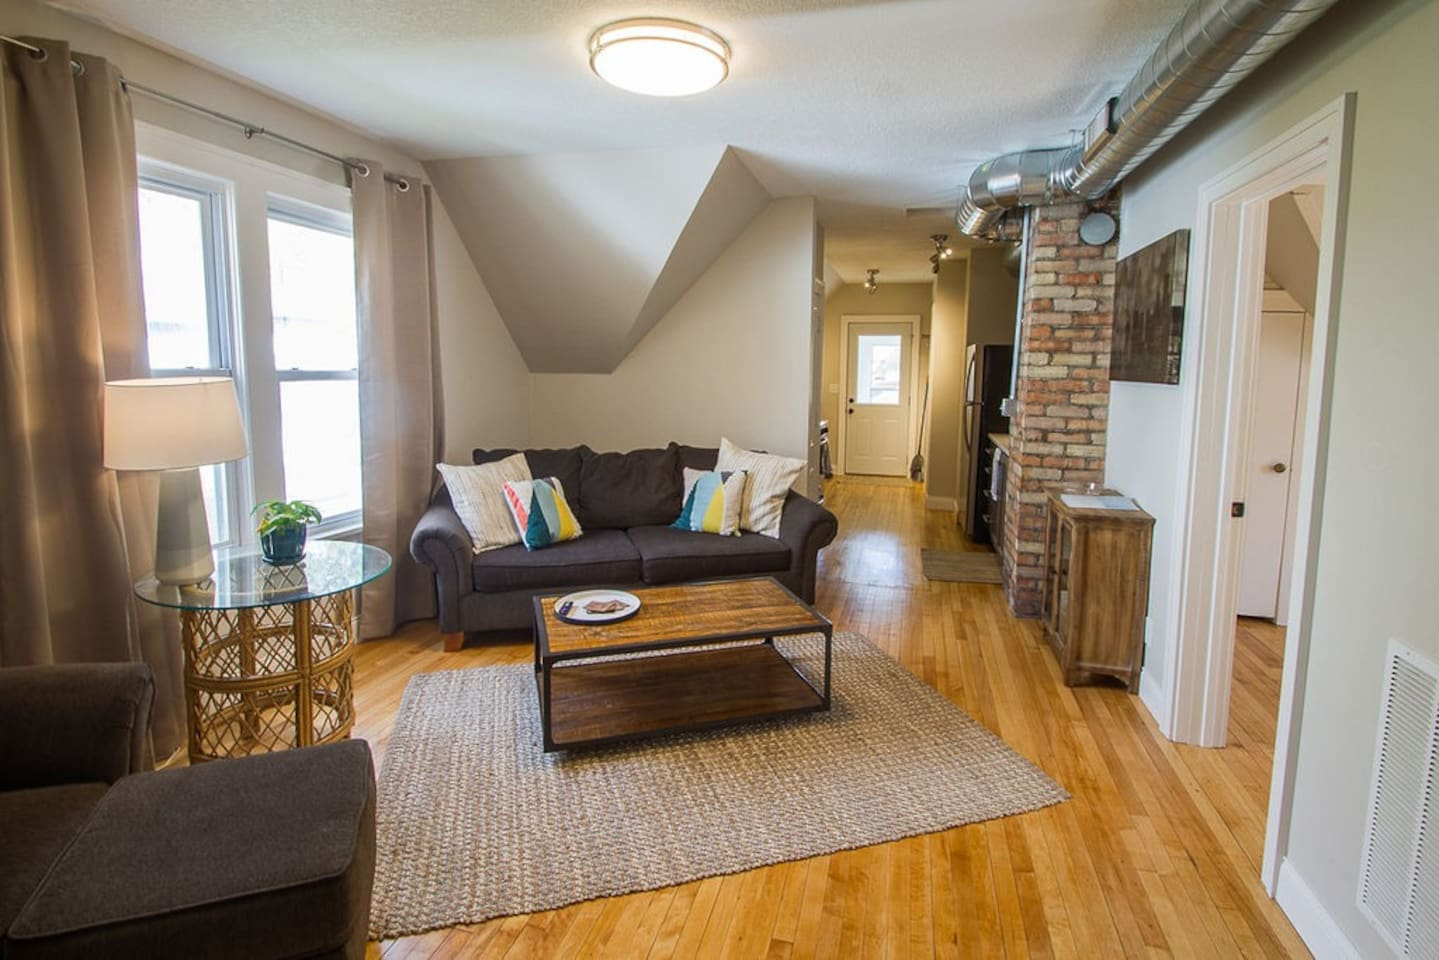 Beautiful exposed brick and duct work above refinished maple floors give the open concept living room and kitchen a modern industrial feel